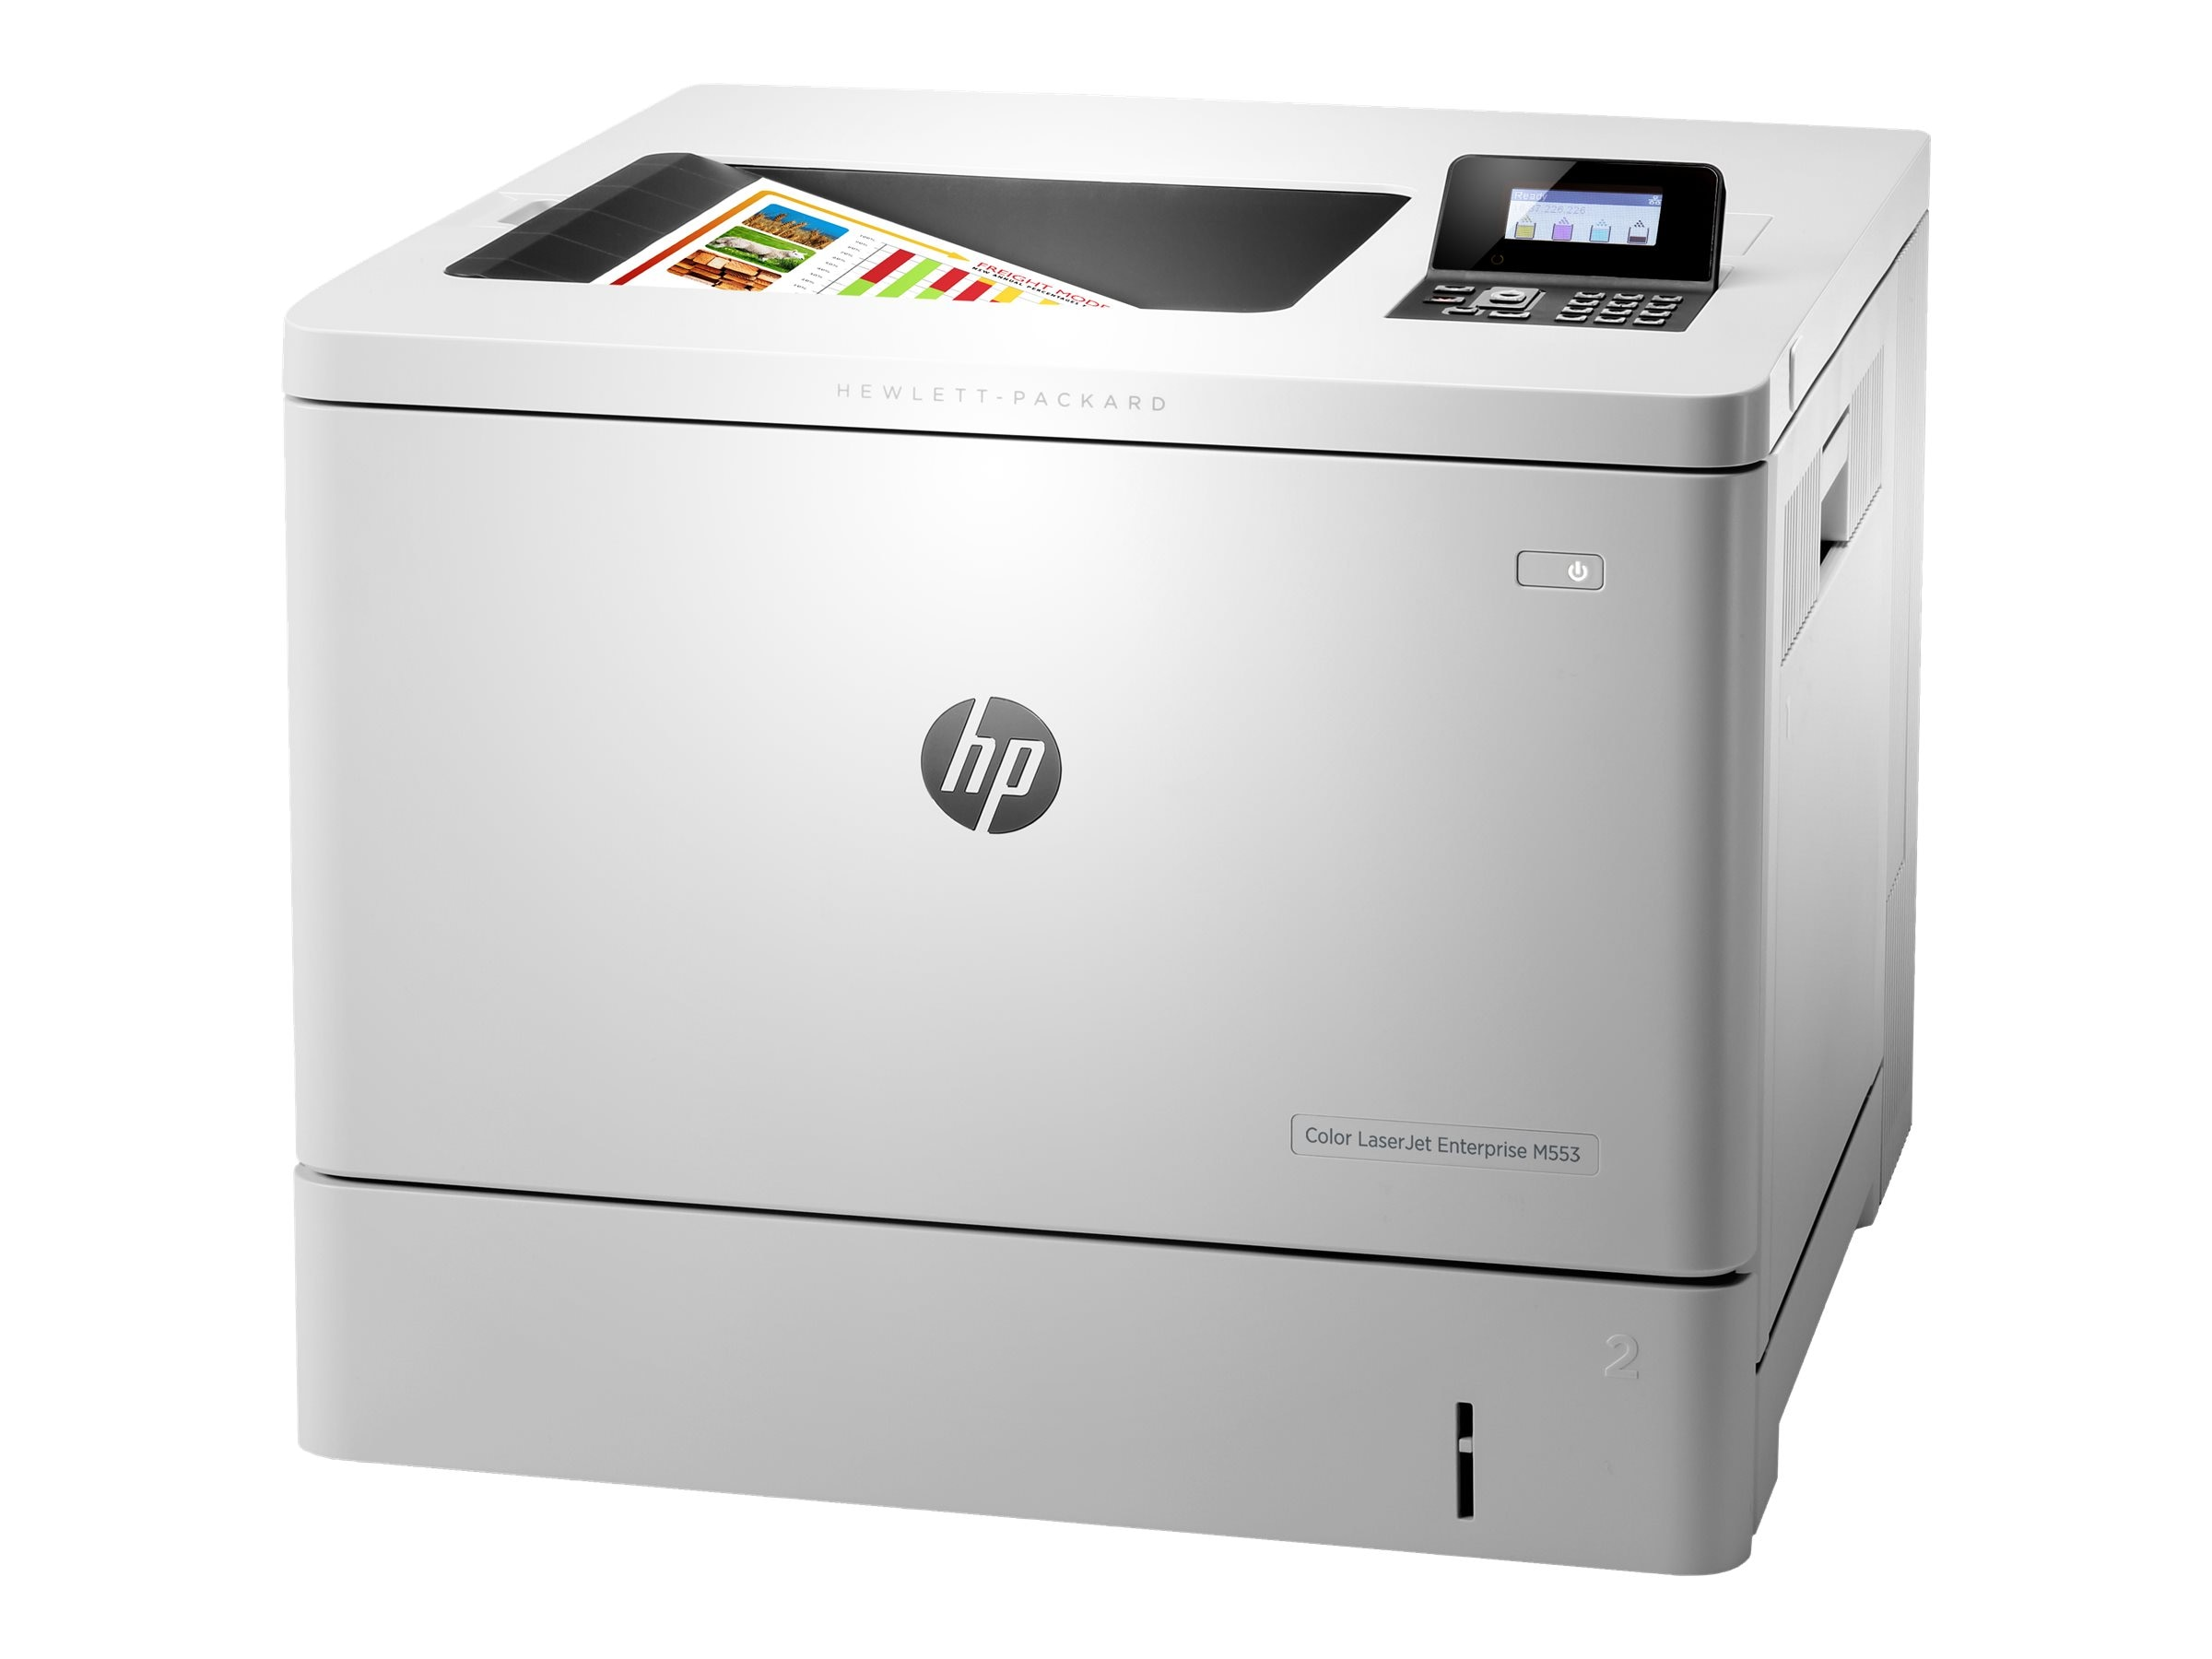 HP LaserJet Managed M553dnm Color Laser Printer, B5L38A#BGJ, 20982793, Printers - Laser & LED (color)